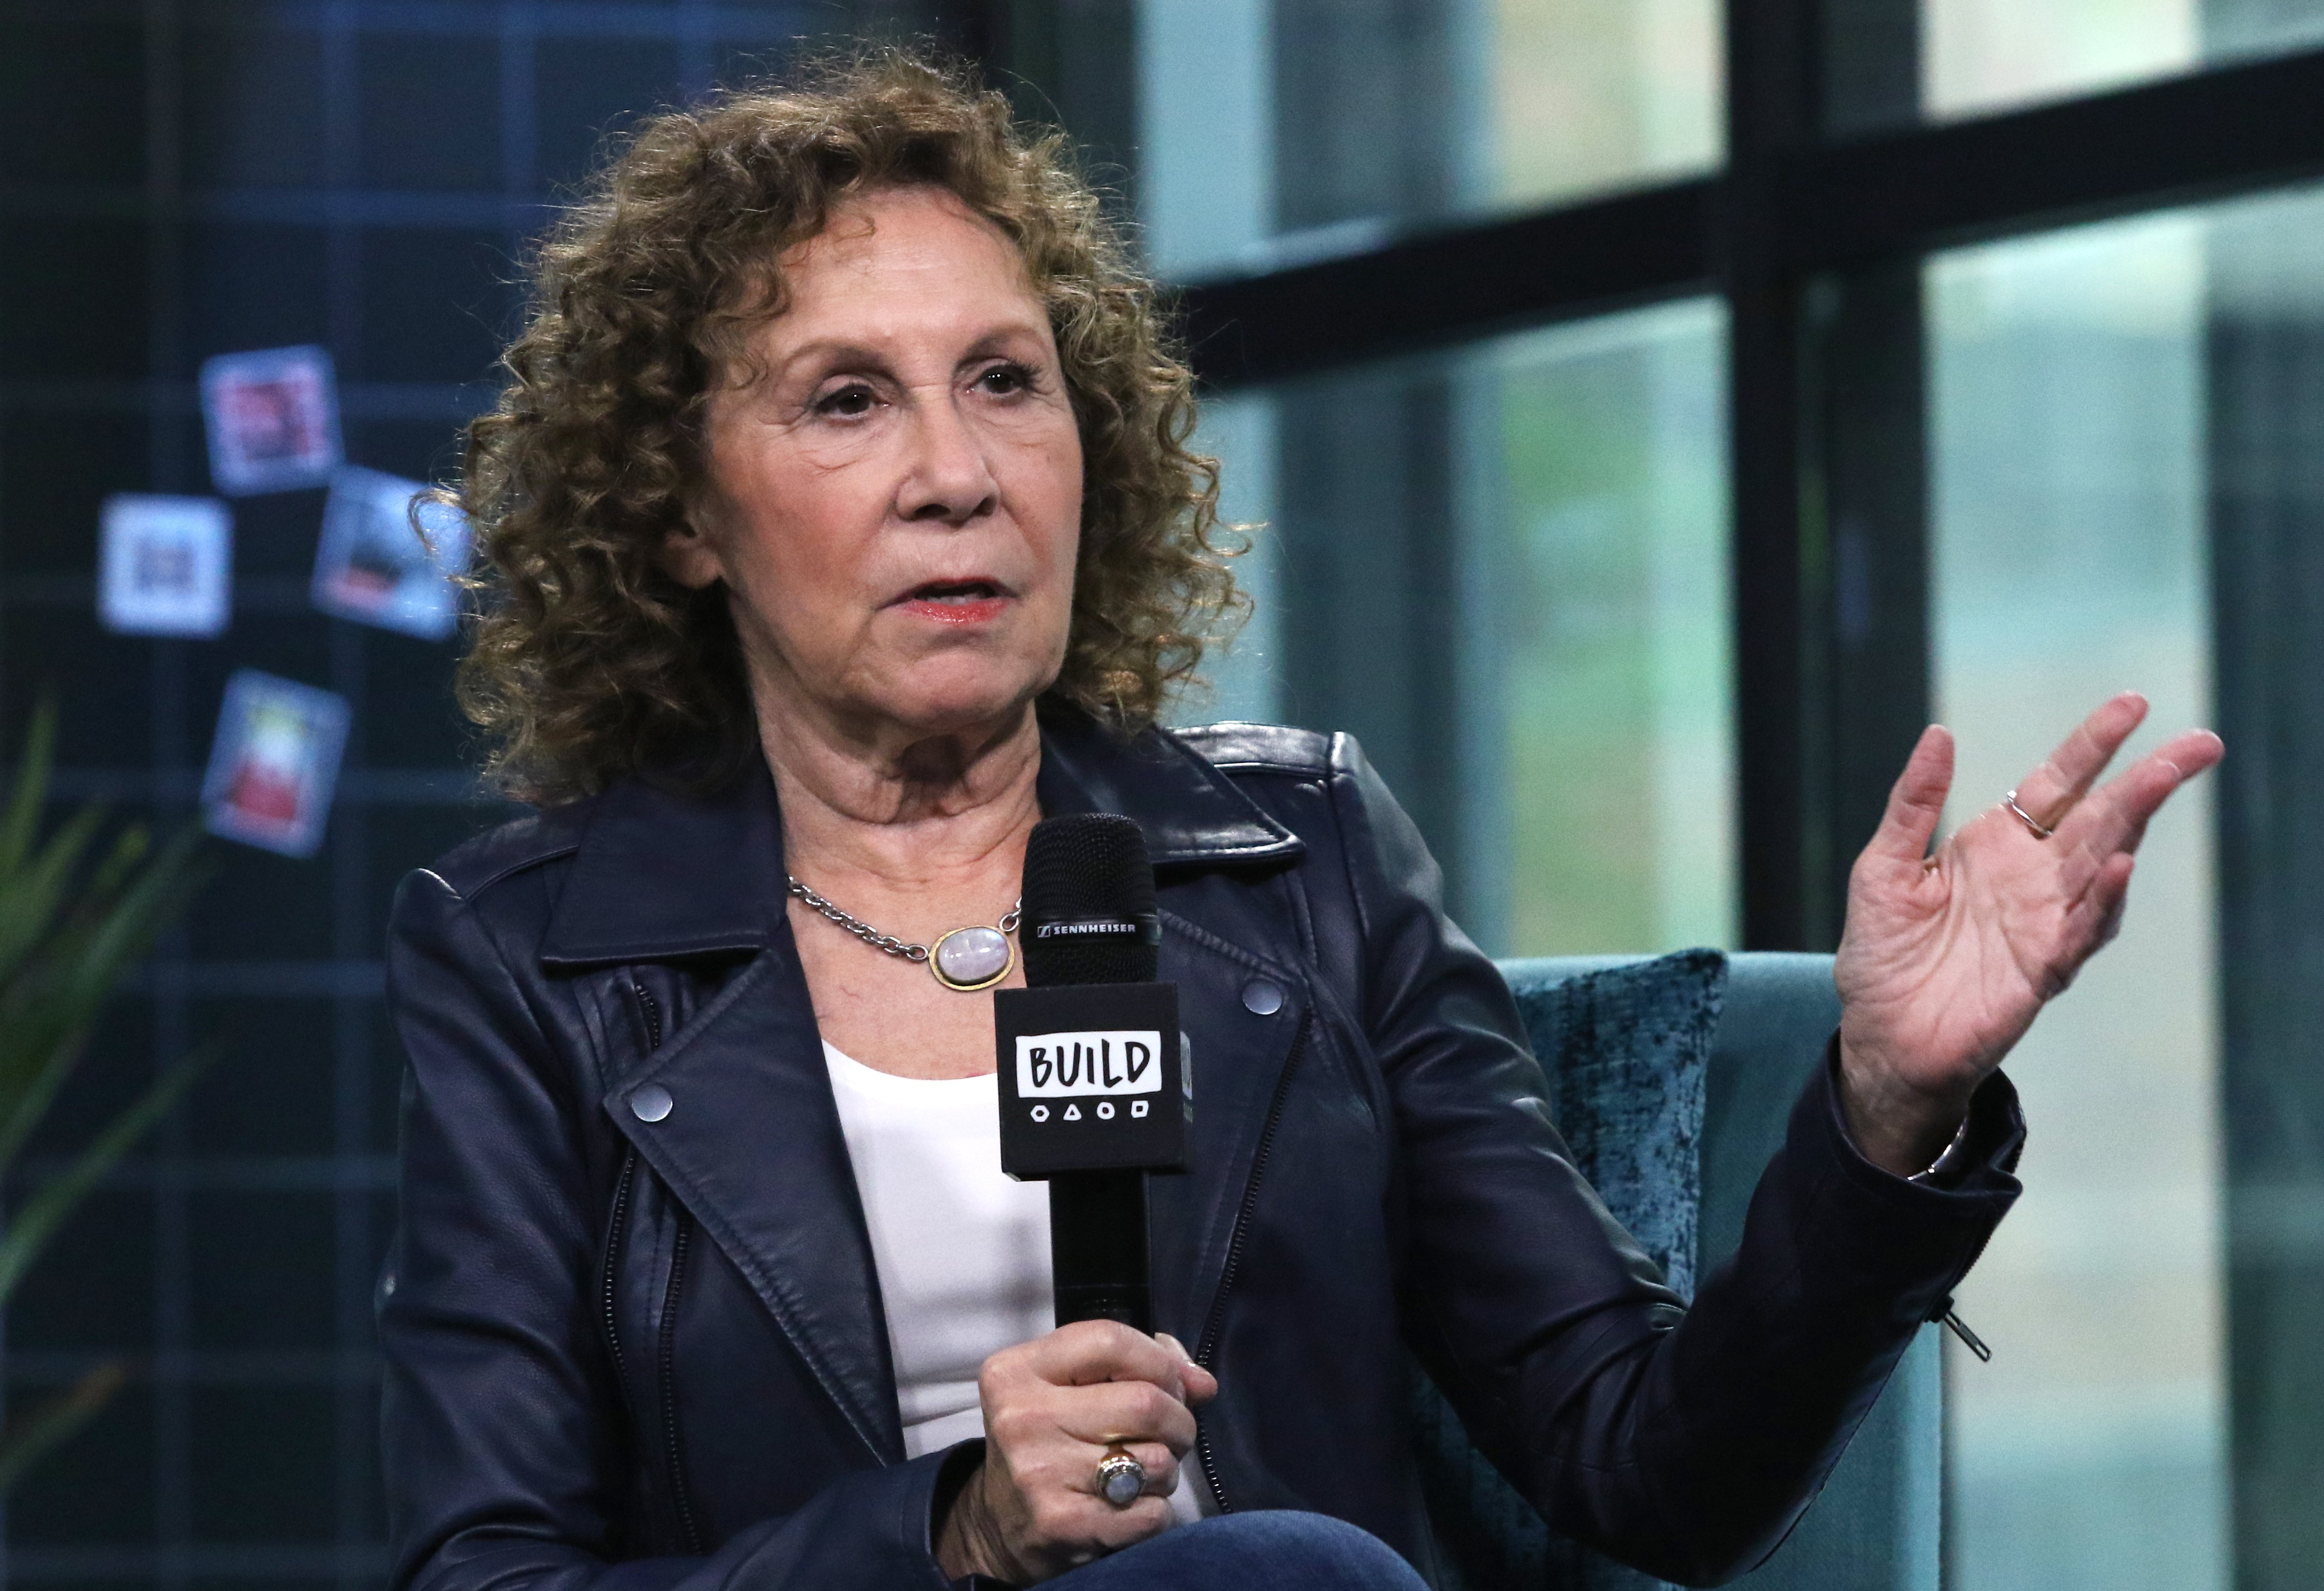 Image Source: Getty Images/Rhea Perlman in an interview